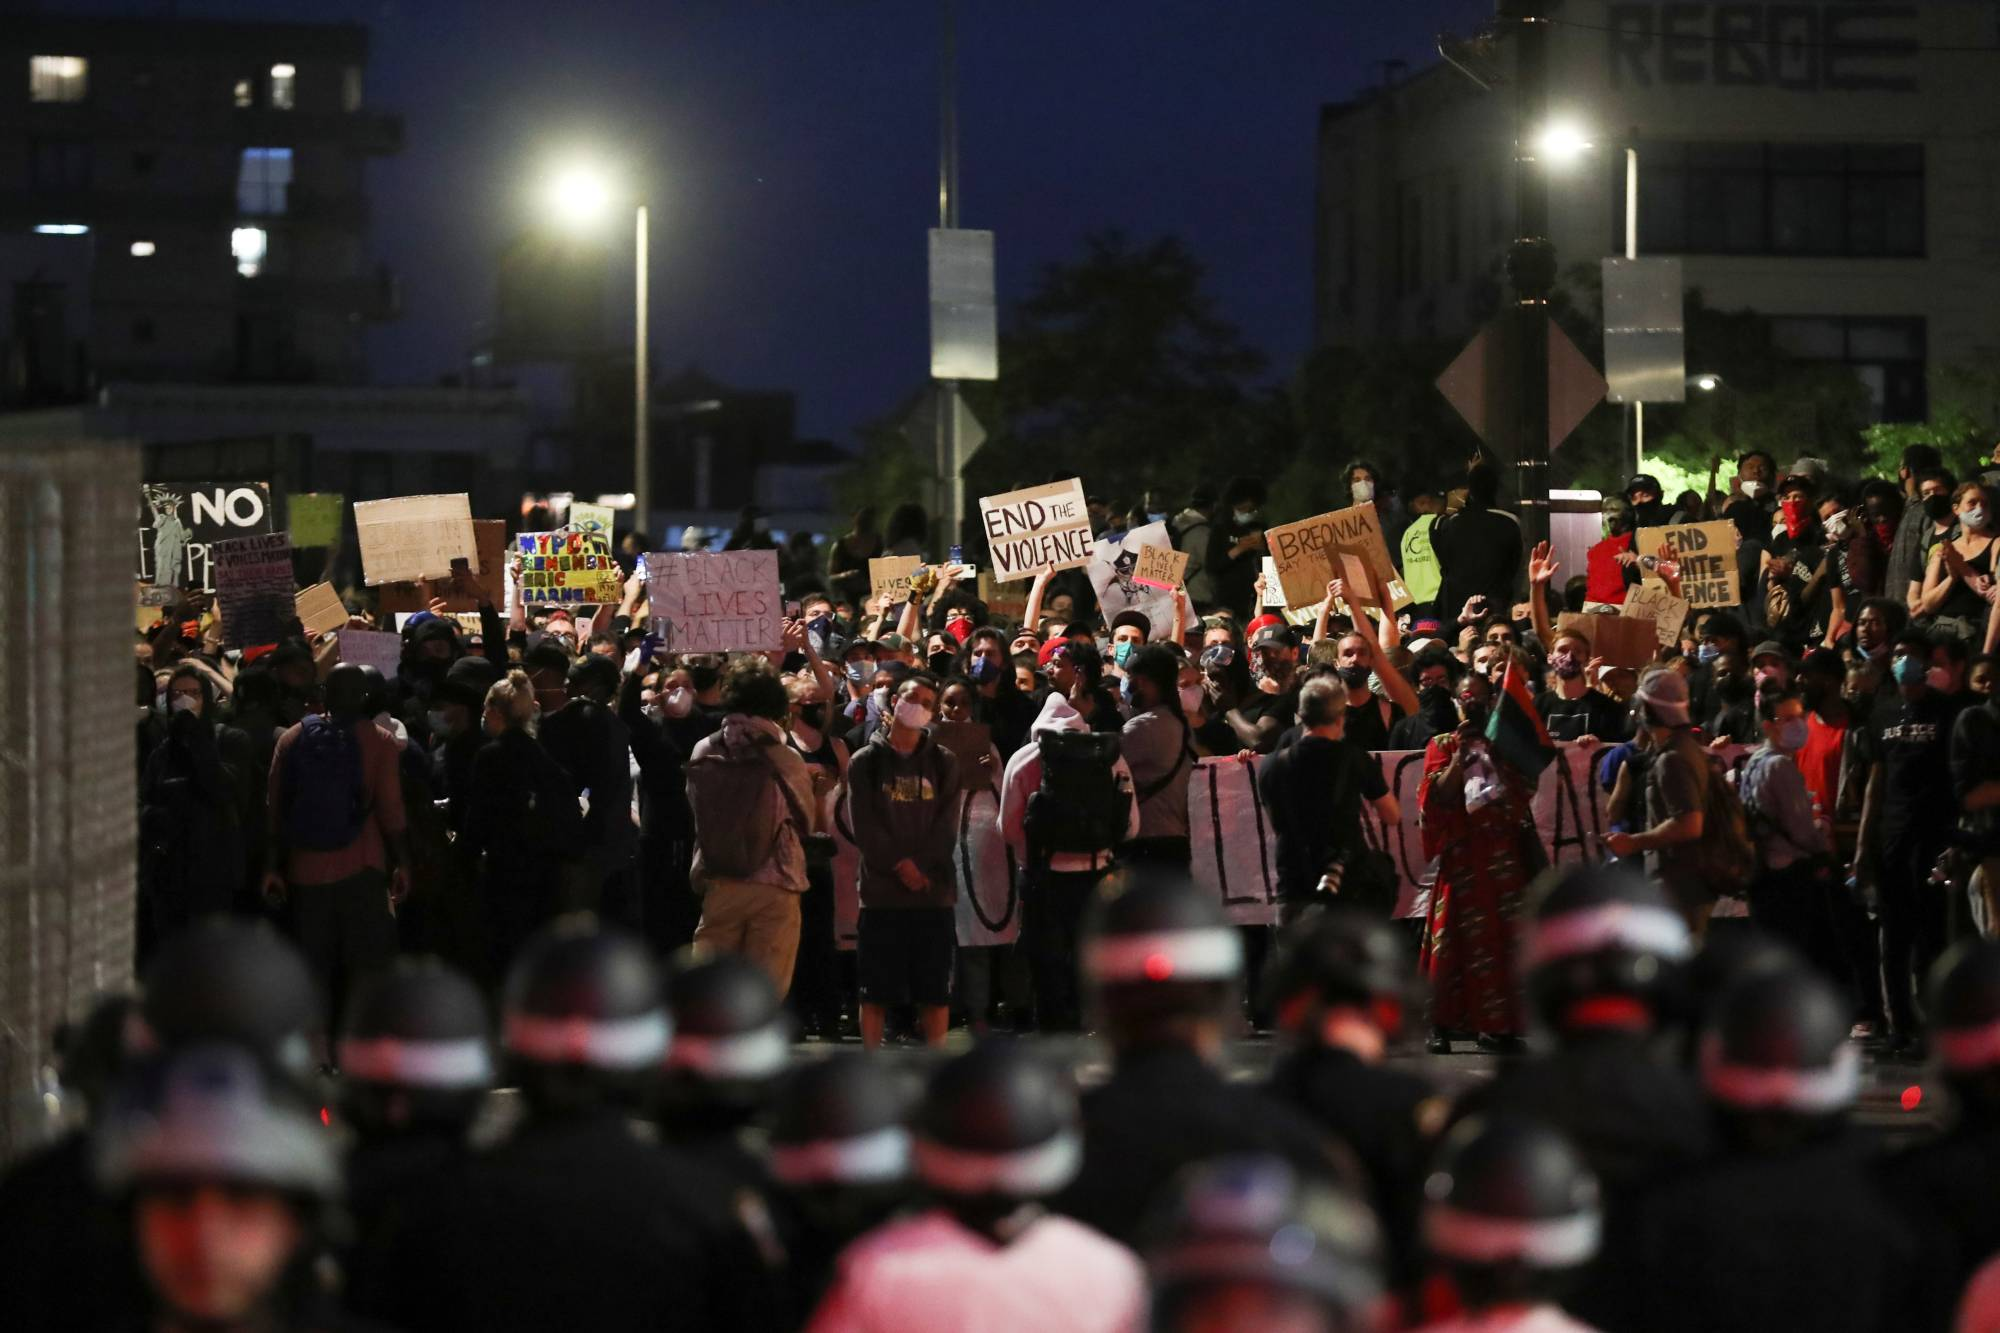 People gather during a protest against George Floyd's death while in Minneapolis police custody, in the Manhattan borough of New York City on Tuesday. | REUTERS